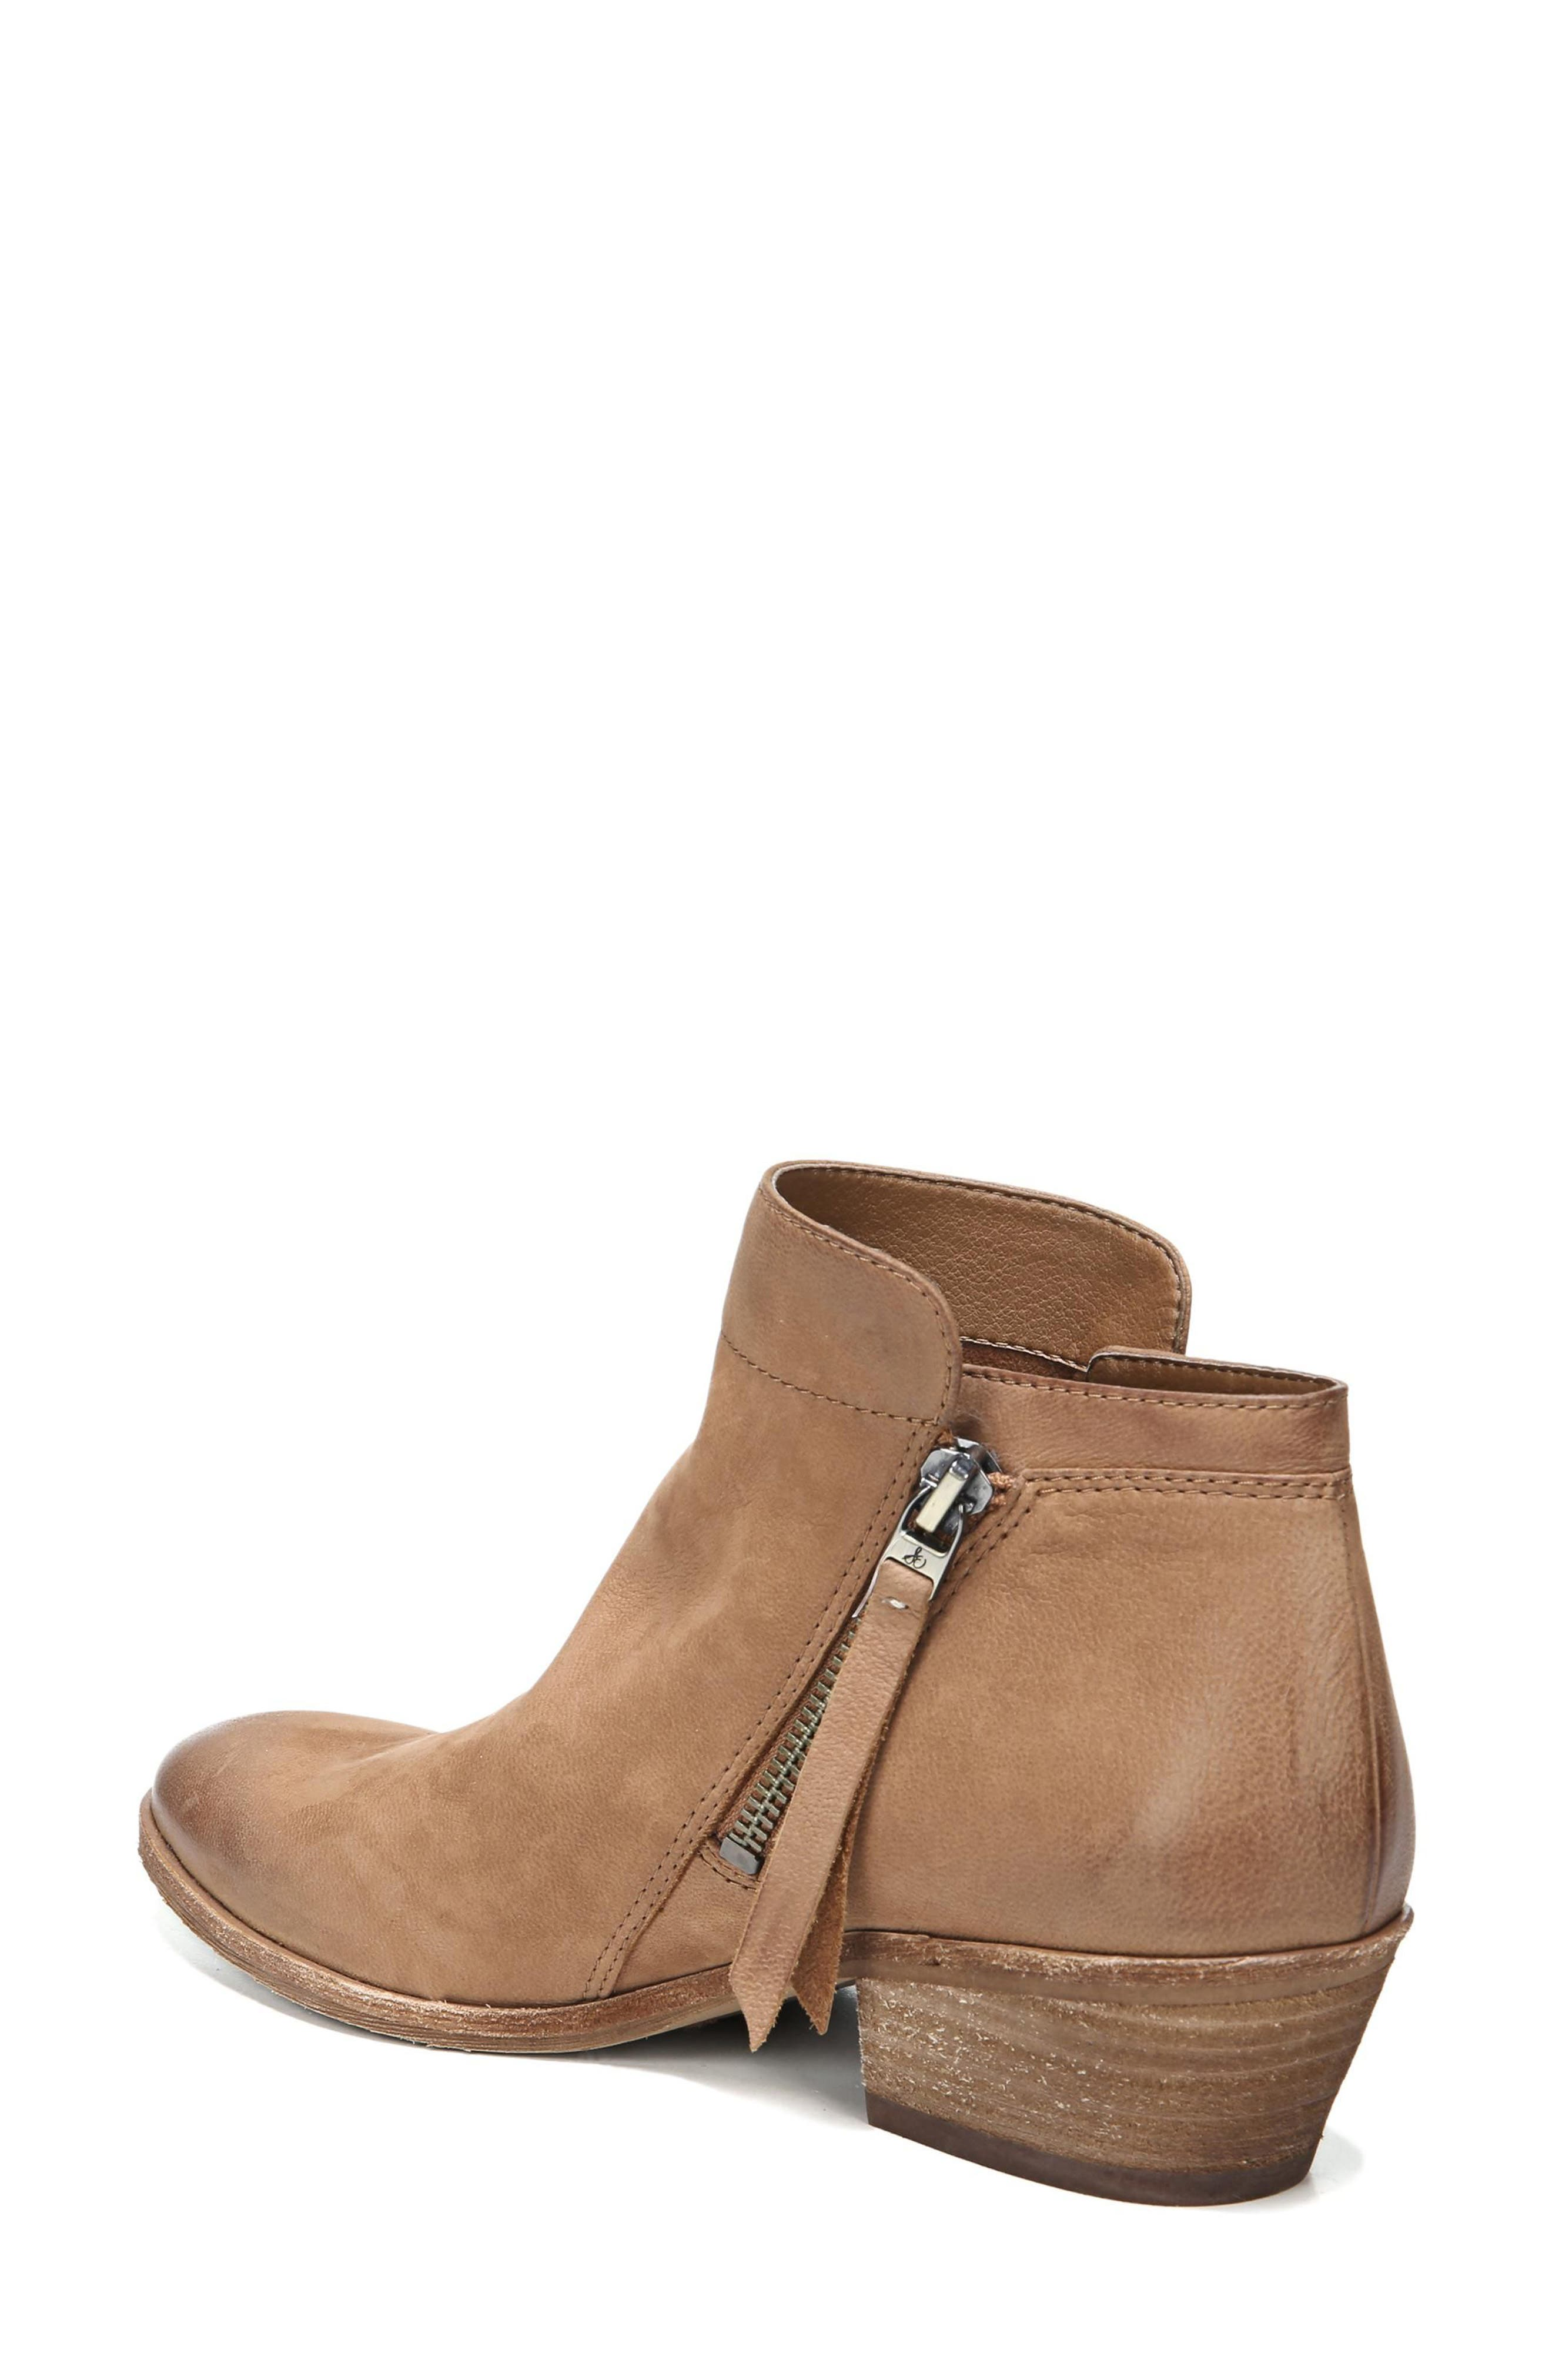 Packer Bootie,                             Alternate thumbnail 2, color,                             DEEP SADDLE LEATHER